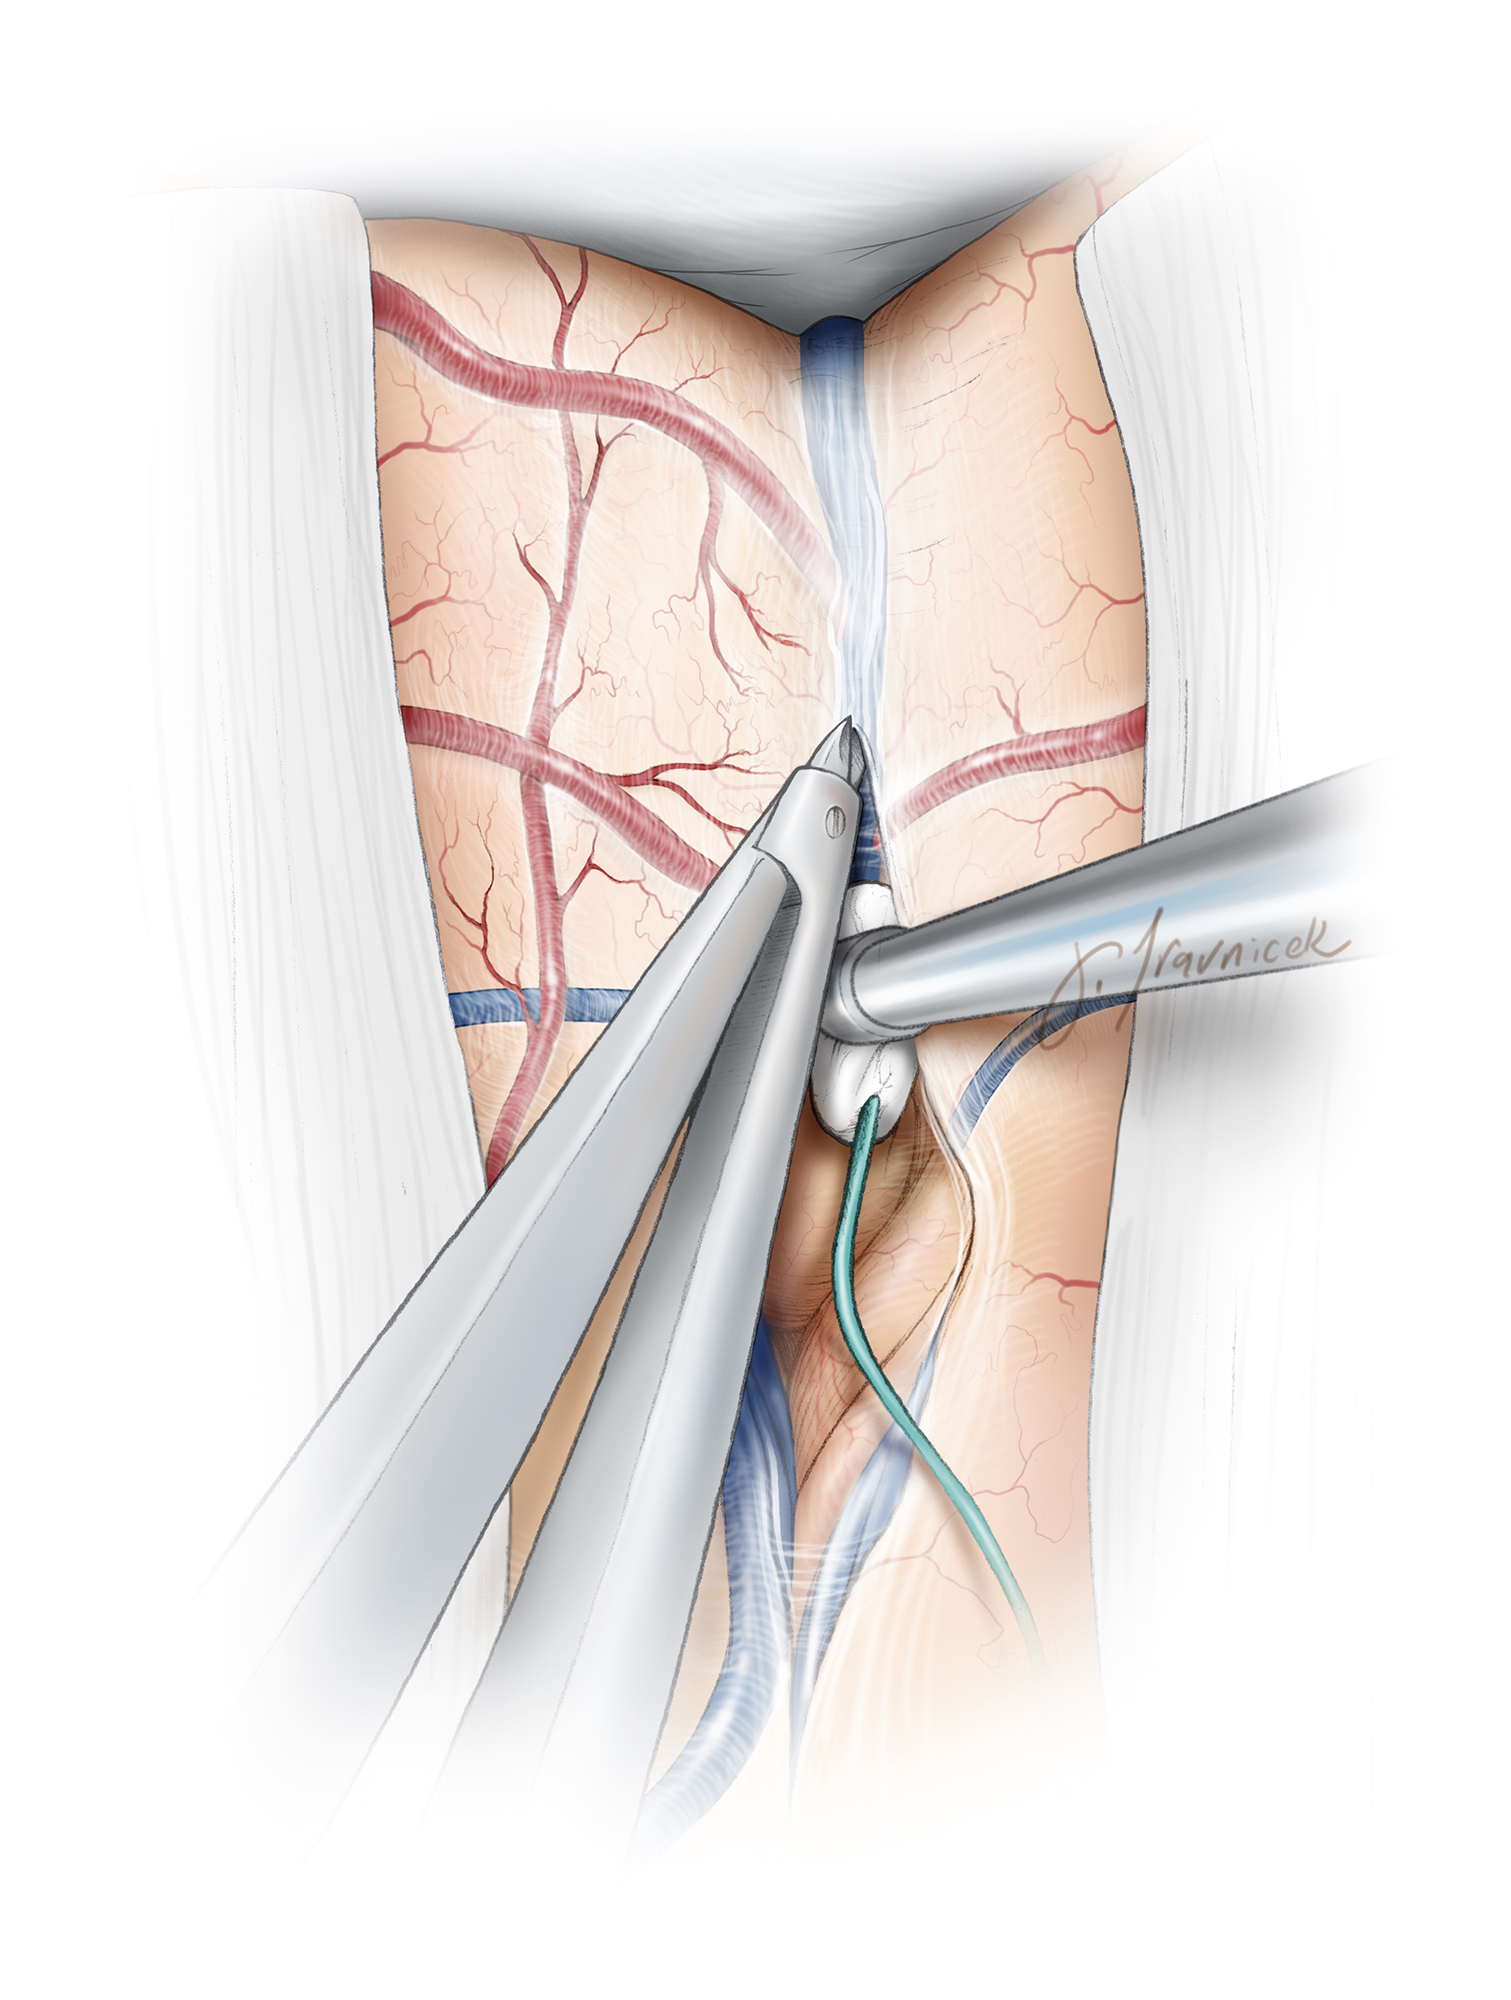 Step 2: The very superficial thick arachnoid layer encasing the veins may be disrupted using fine forceps or microscissors. A microcotton ball is used to keep the dissection planes open and avoid direct contact between the suction tip and the pial surfaces.